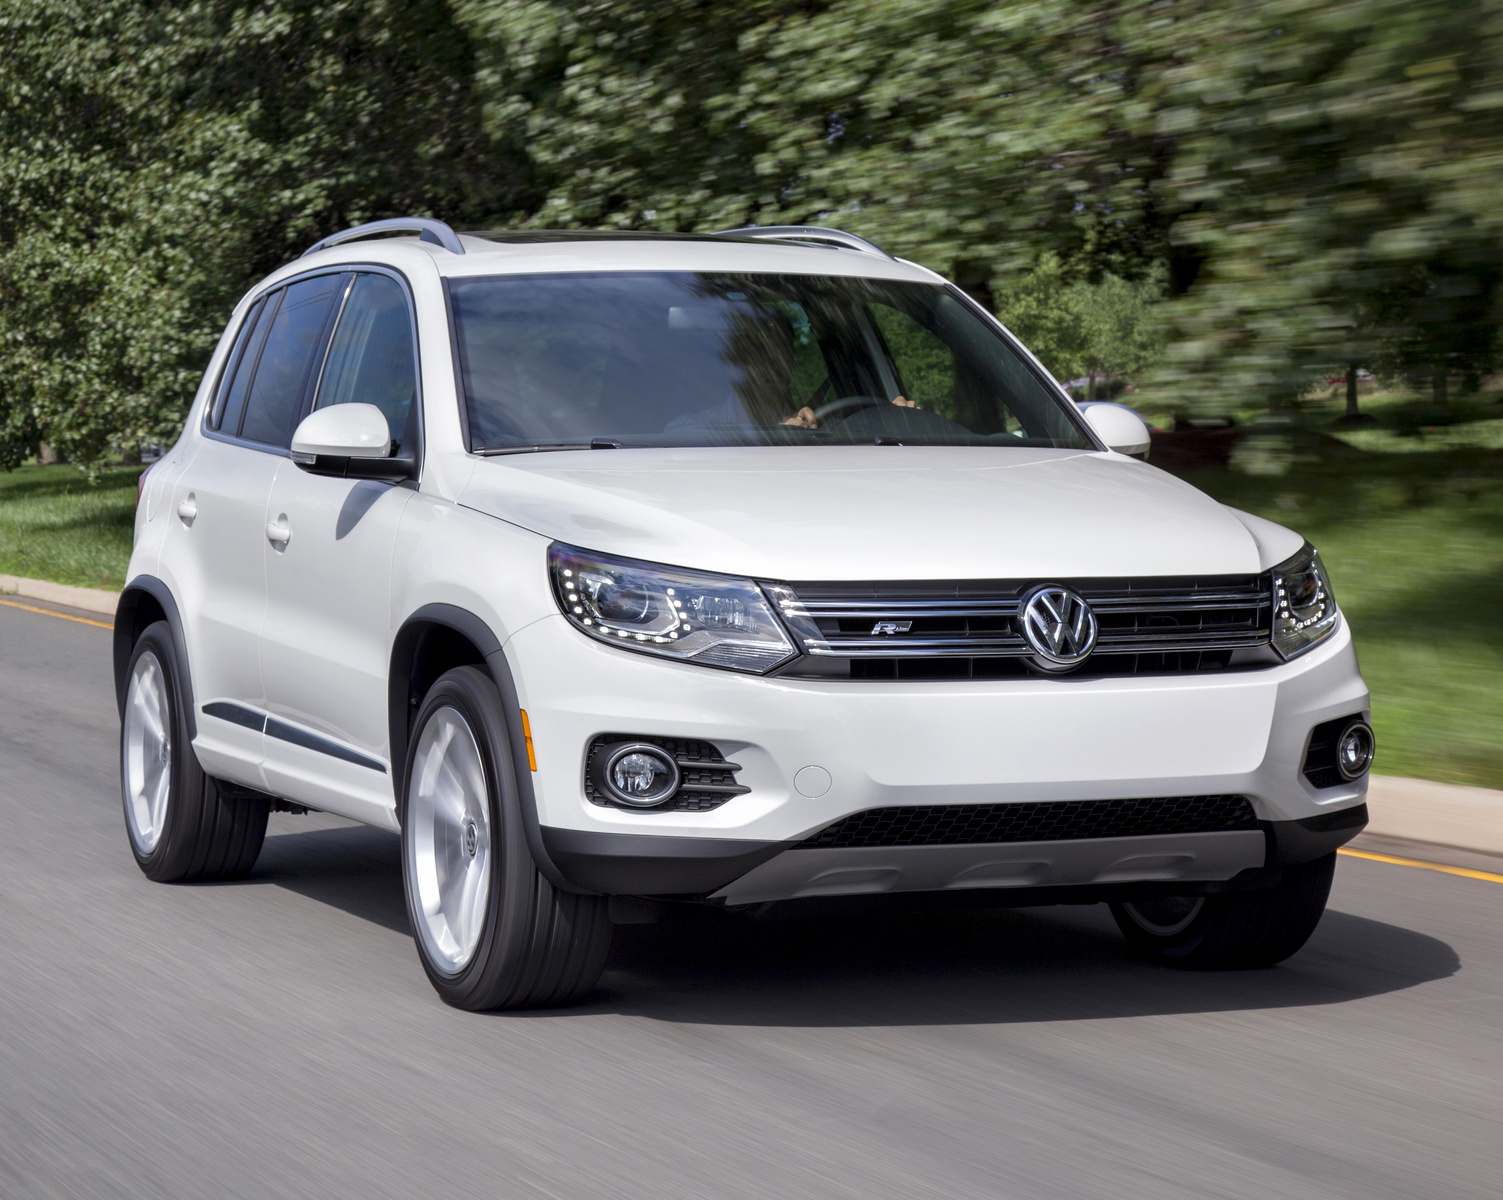 2014 volkswagen tiguan review cargurus. Black Bedroom Furniture Sets. Home Design Ideas